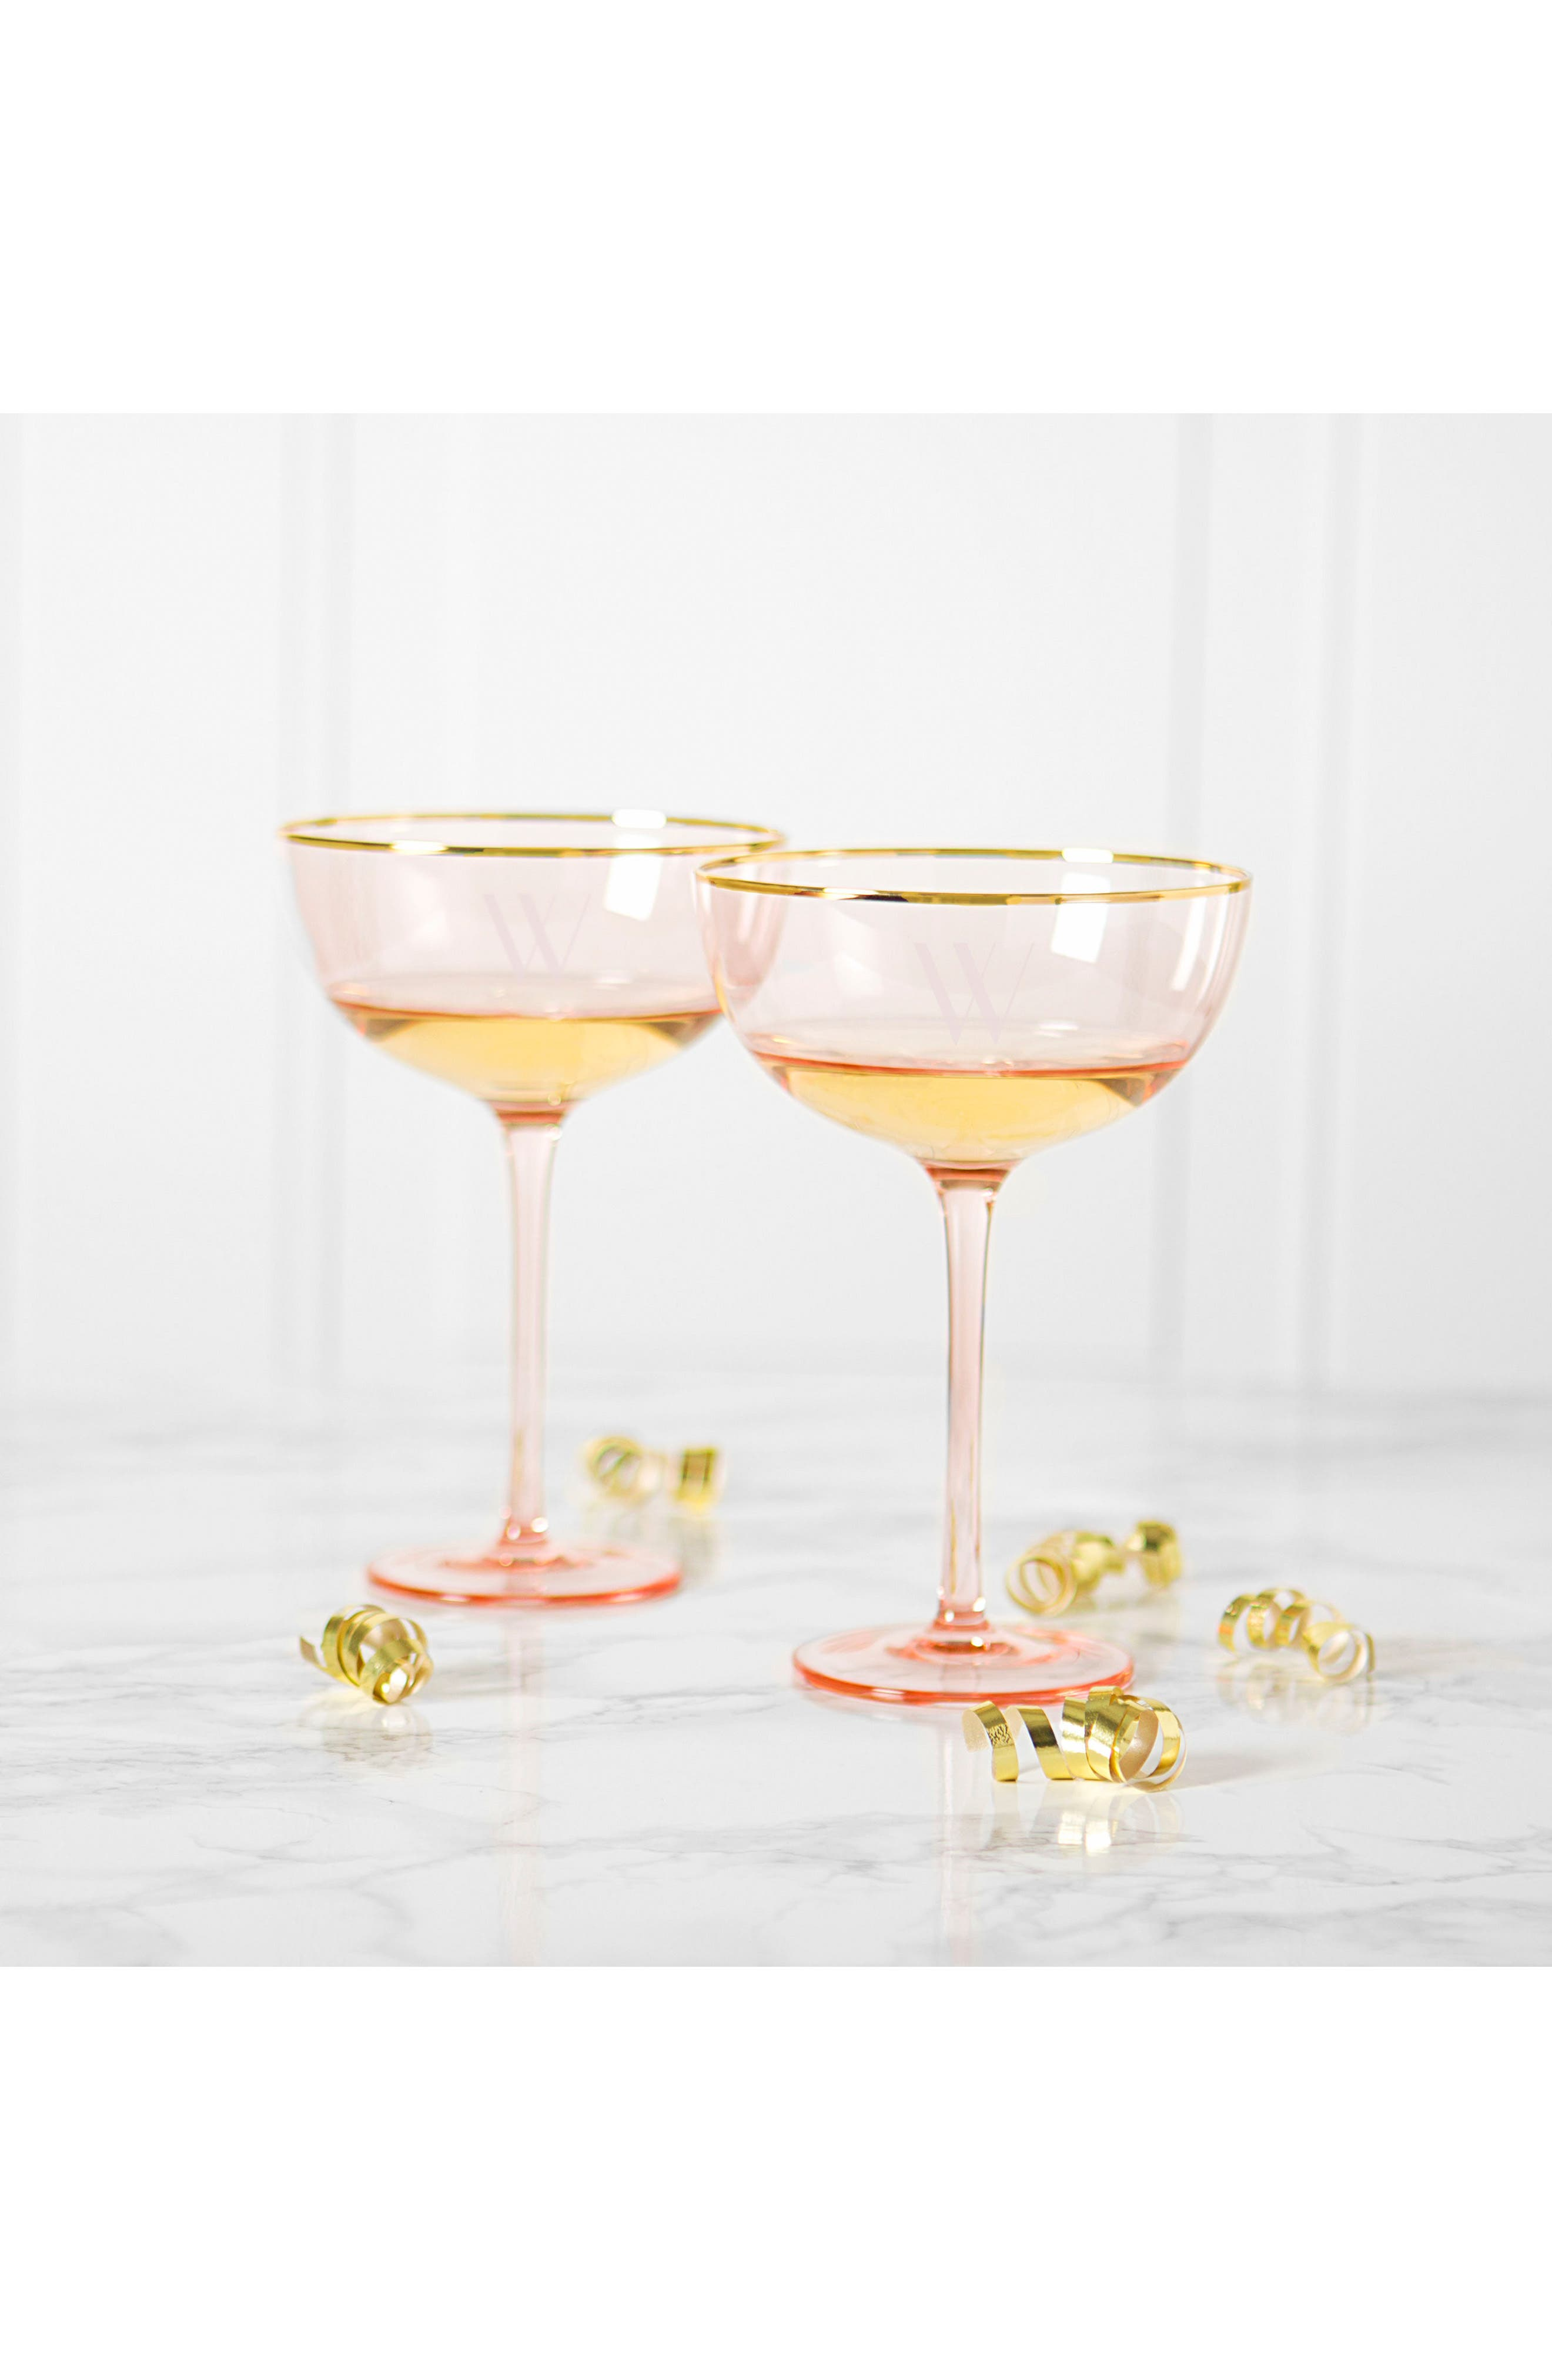 Monogram Set of 2 Champagne Coupes,                             Alternate thumbnail 4, color,